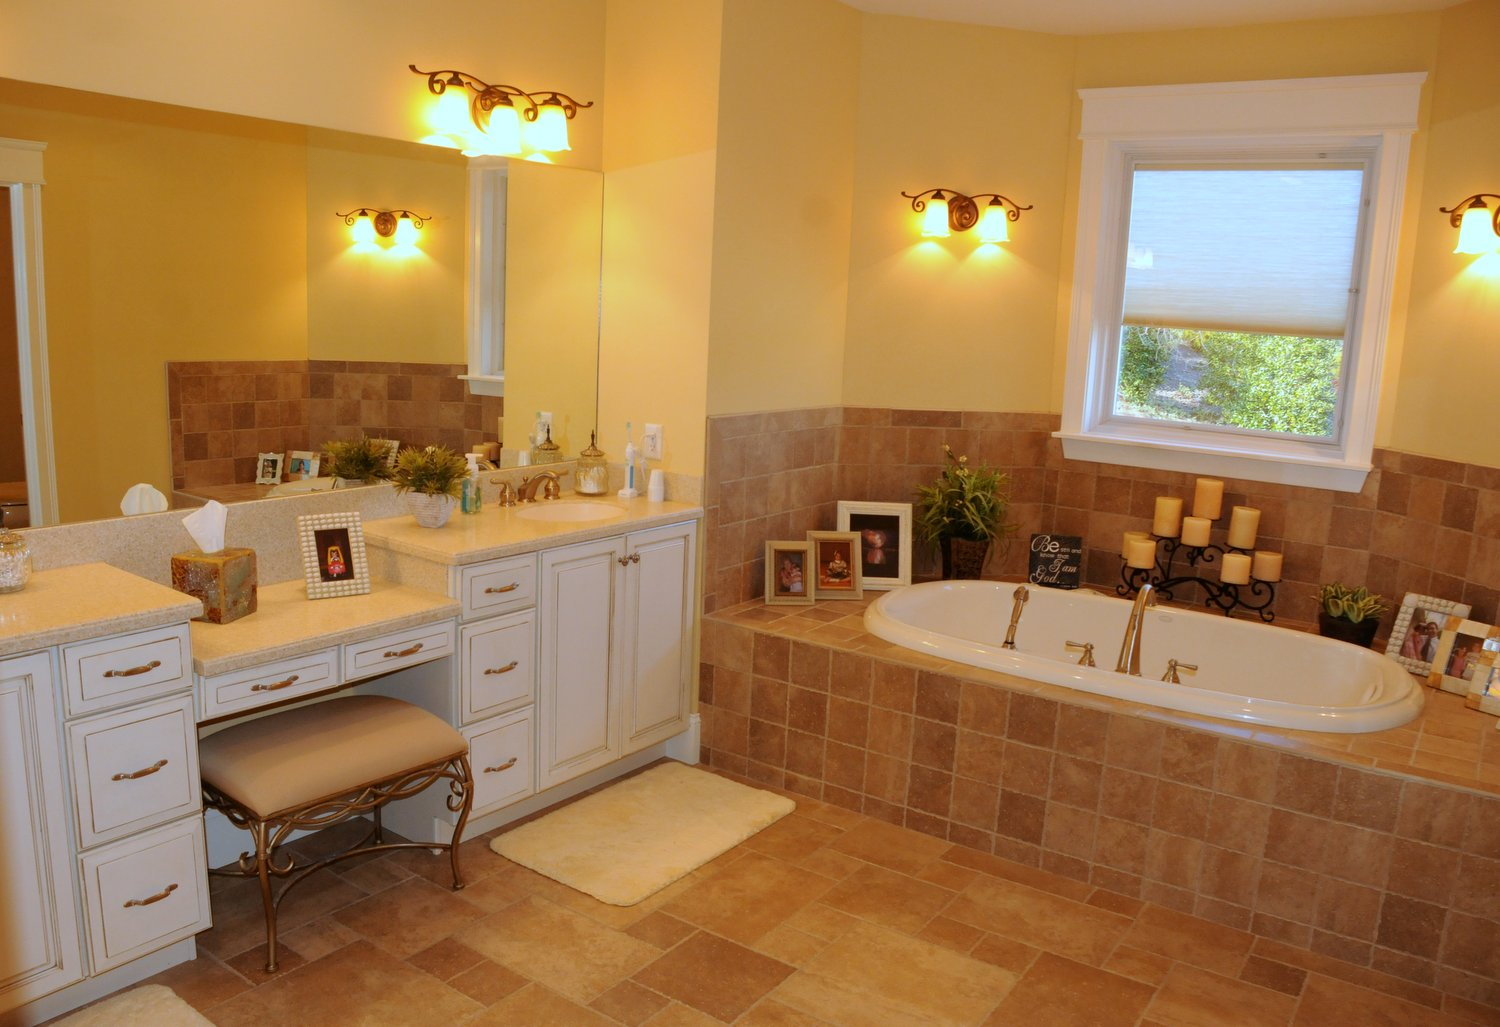 Master Bath with his/her vanity sinks and whirlpool tub